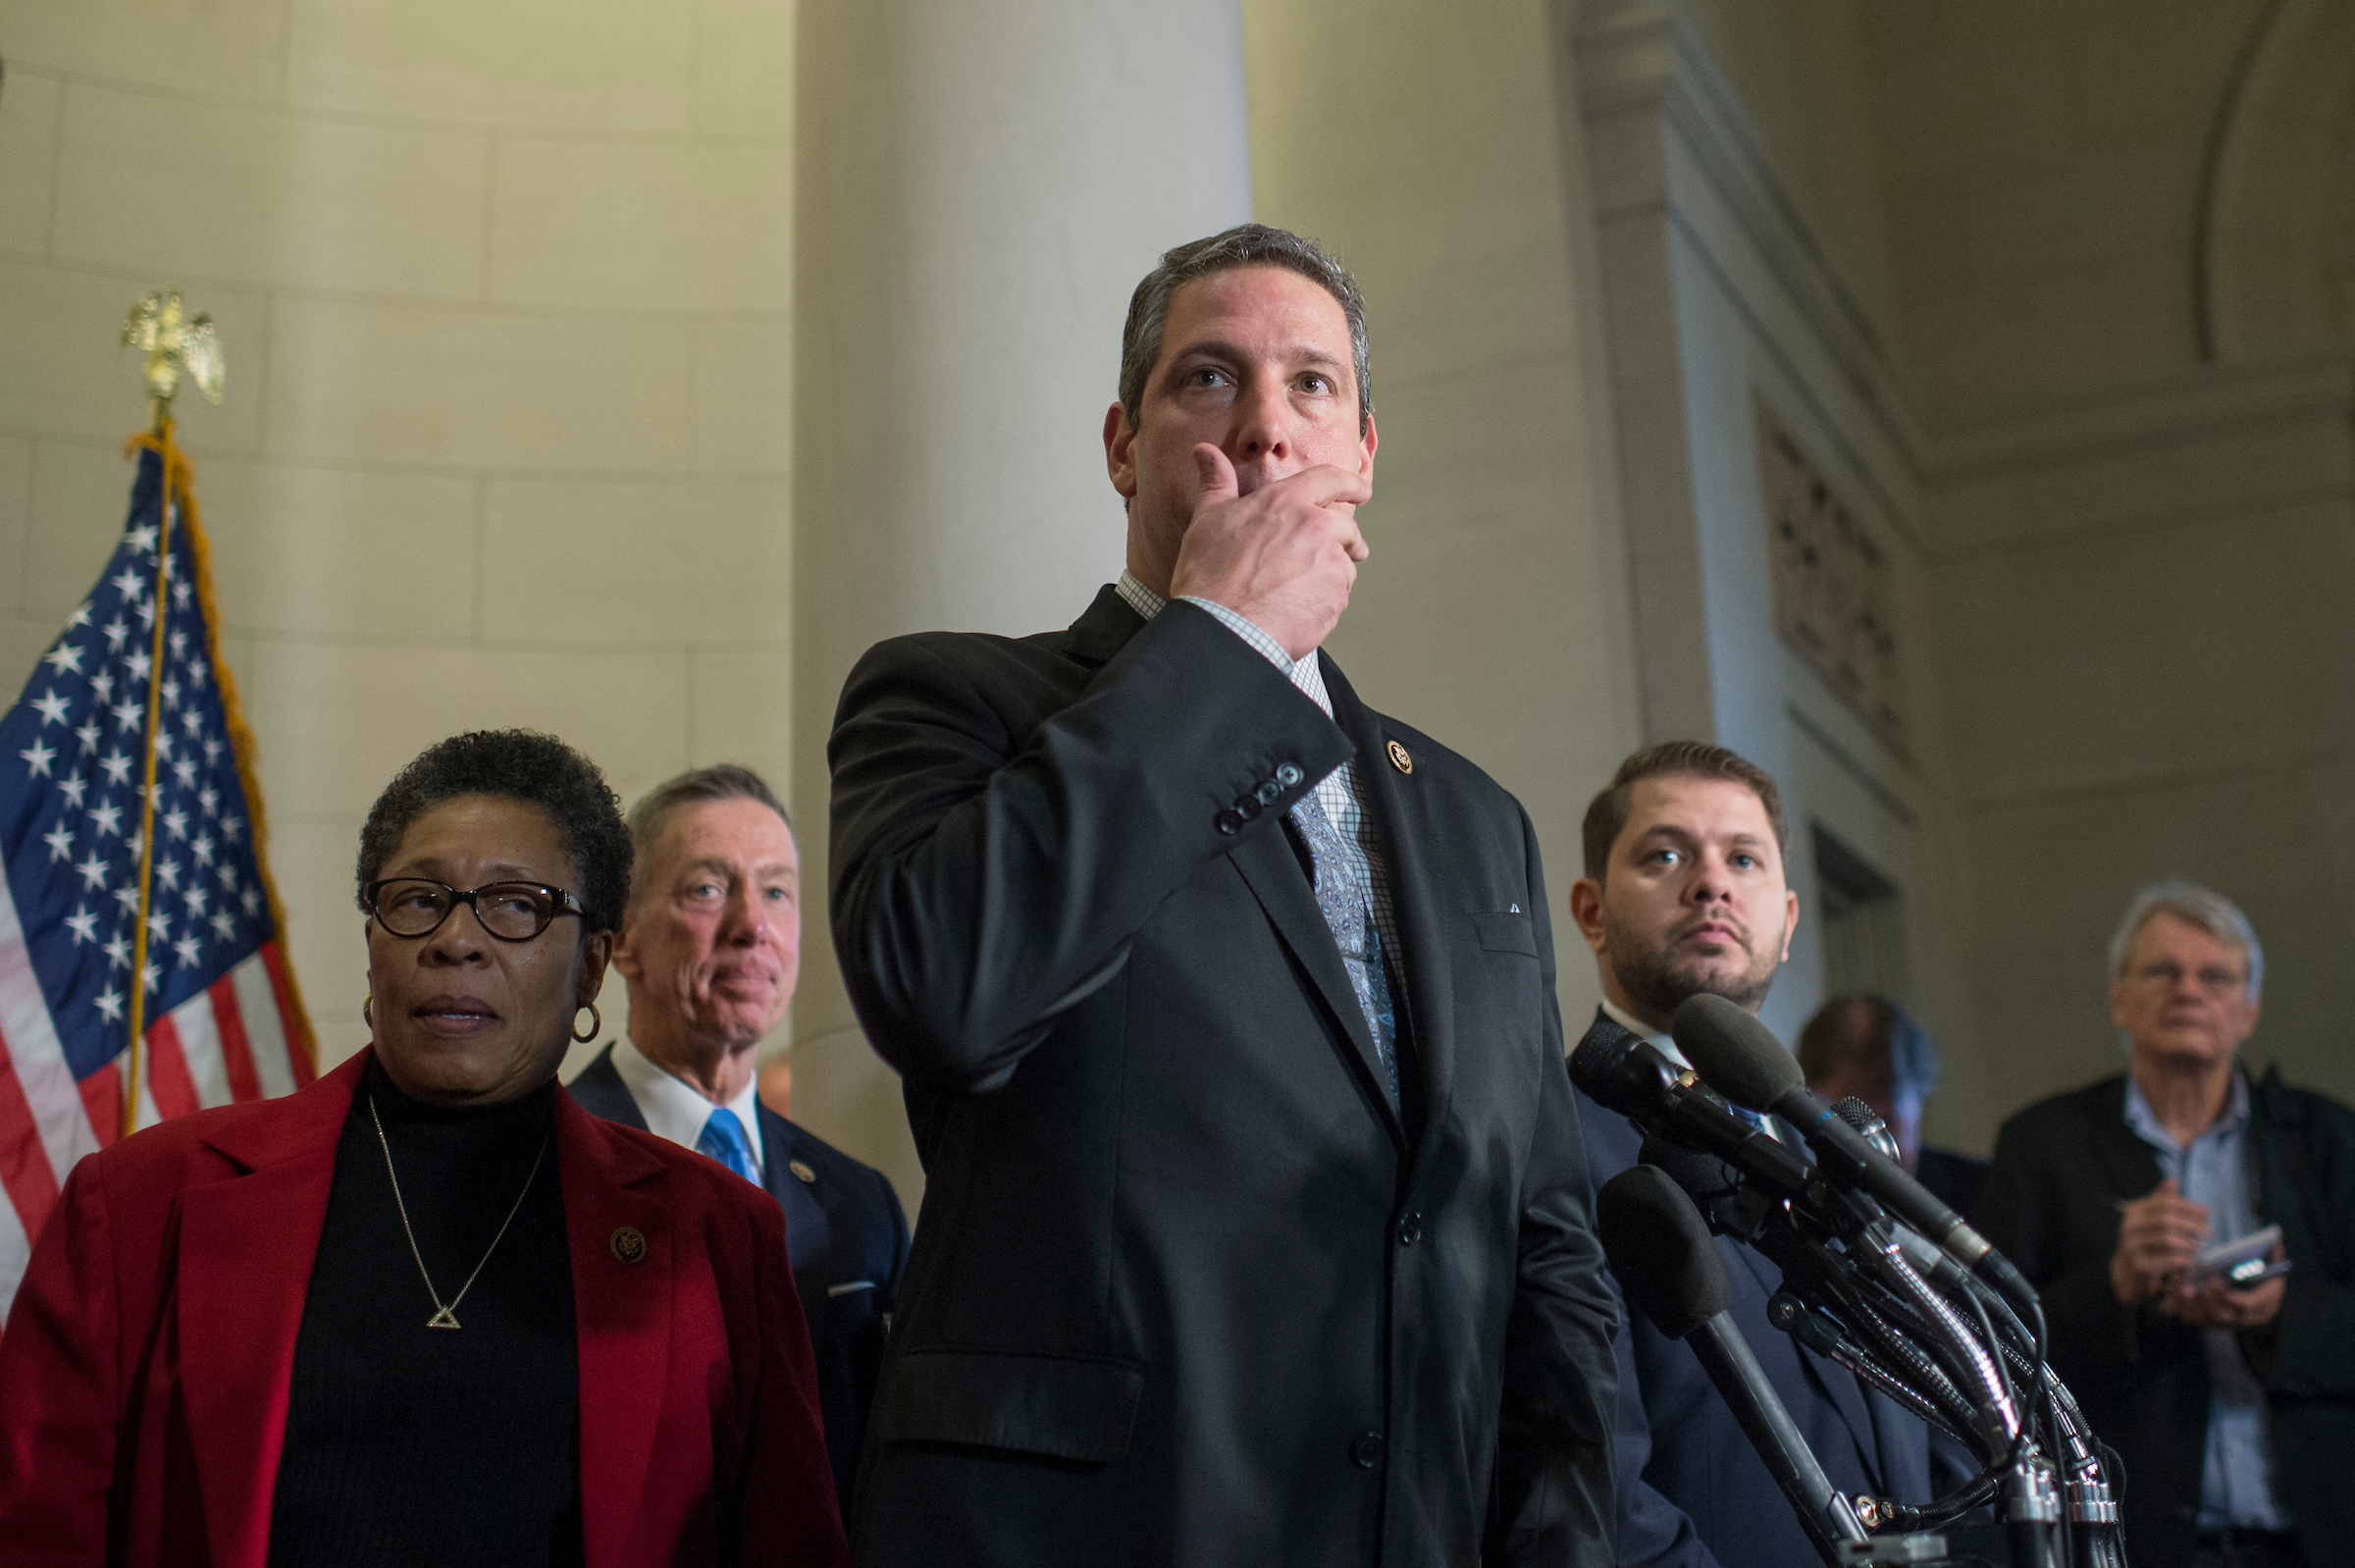 UNITED STATES - NOVEMBER 30: Rep. Tim Ryan, D-Ohio, a podium,  speaks with the media in Longworth Building after losing the race for Democratic leader to House Minority Leader Nancy Pelosi, D-Calif., November 30, 2016. Also Appearing are, from left, Reps. Marcia Fudge, D-Ohio, Stephen Lynch, D-Mass., and Ruben Gallego, D-Ariz. (Photo By Tom Williams/CQ Roll Call)